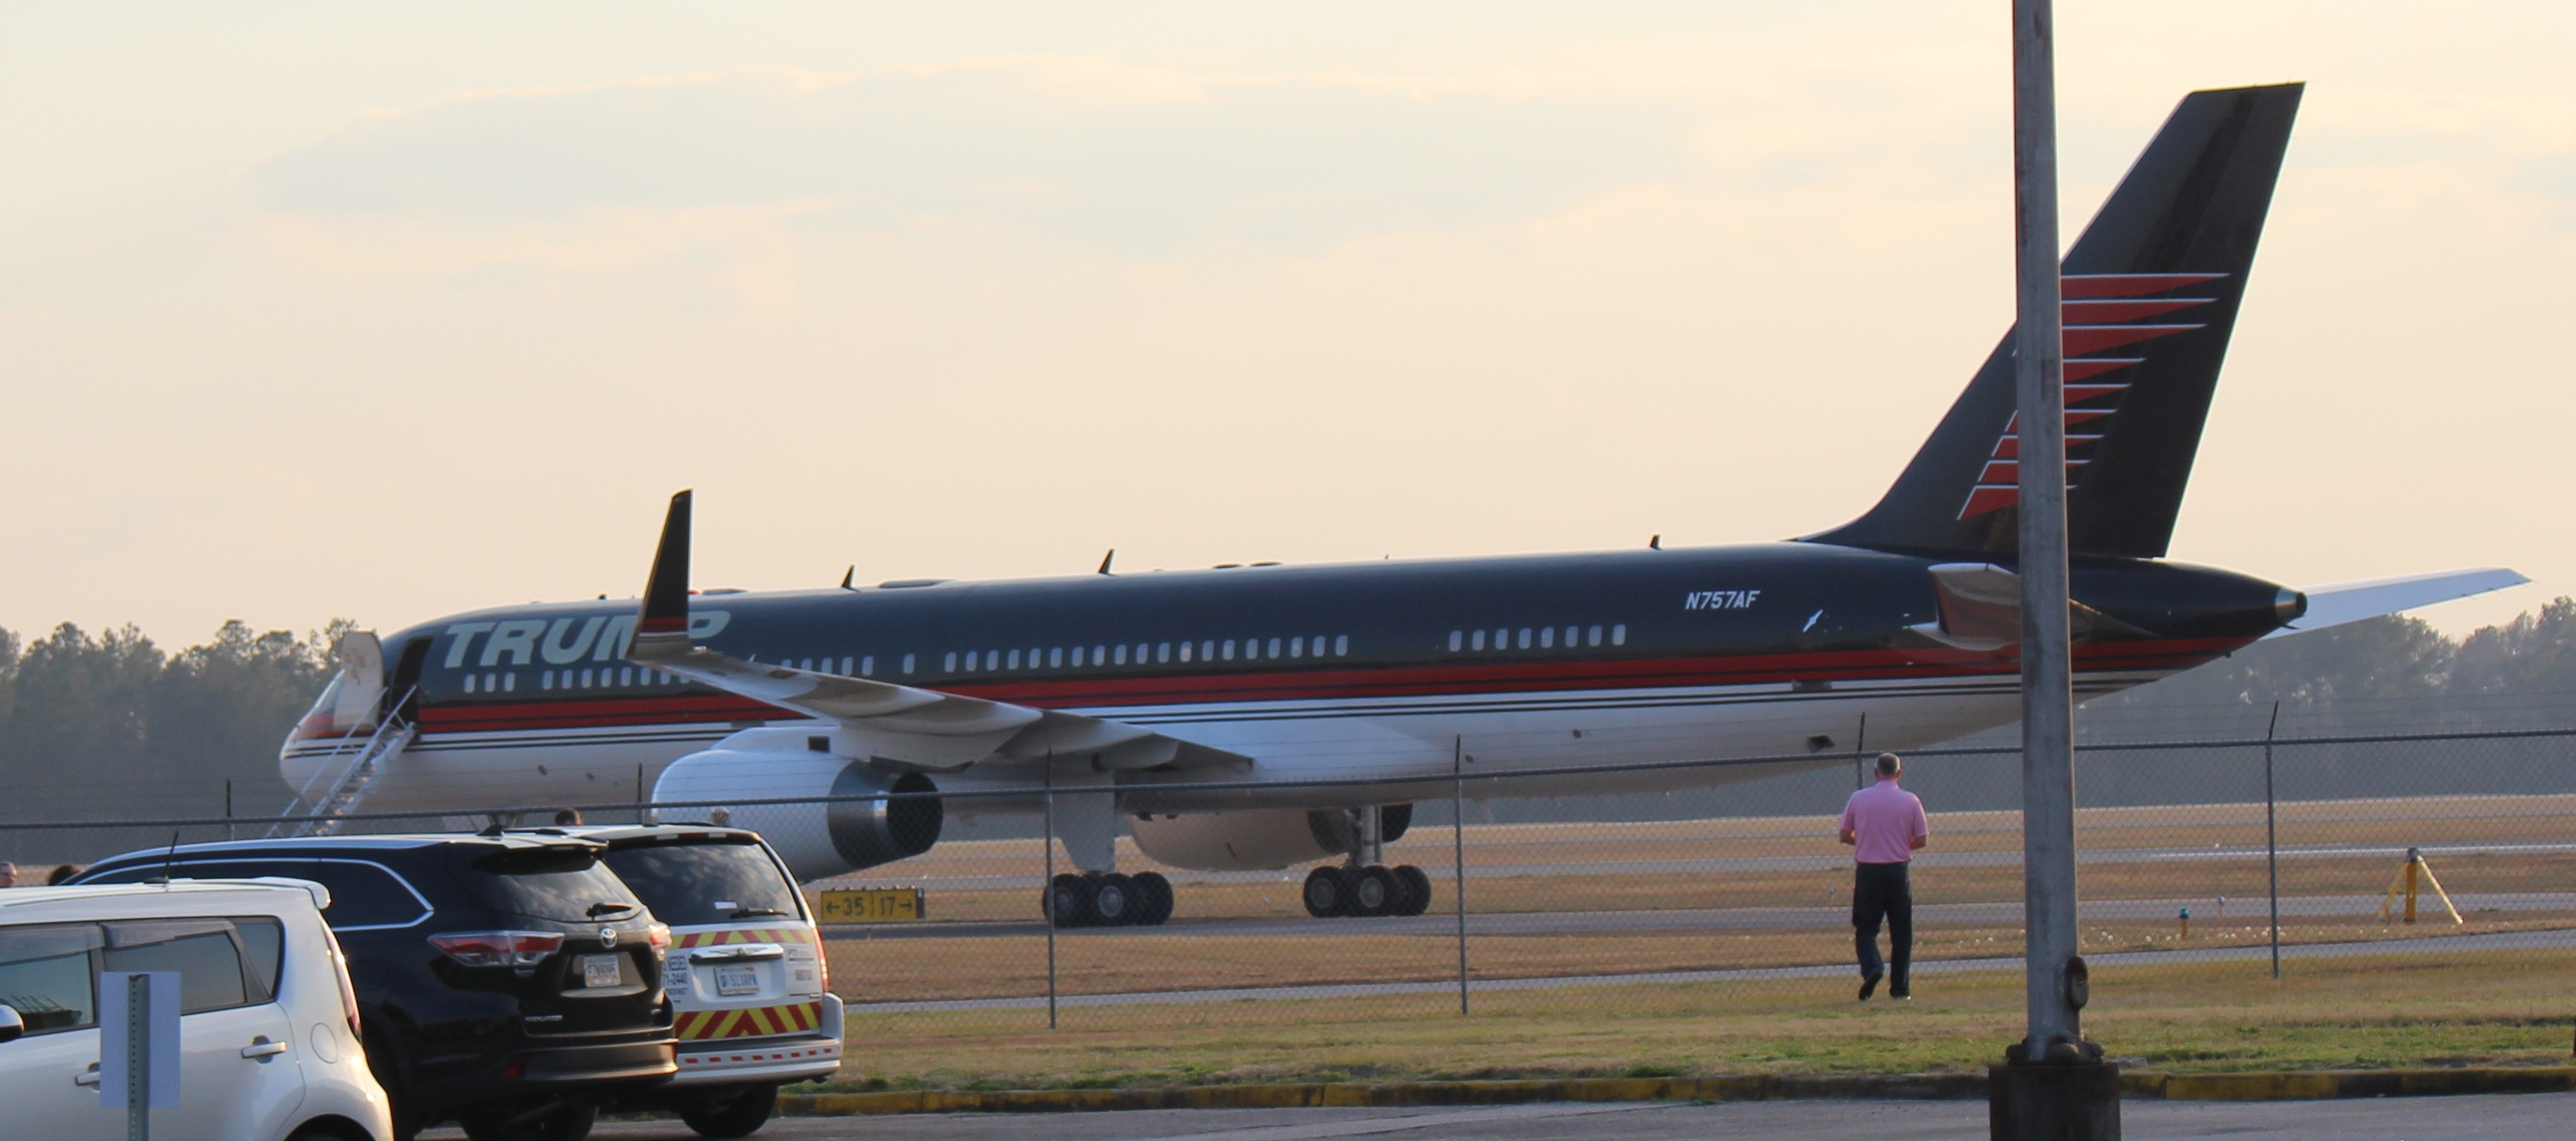 One of Trump's assets is a Boeing 757-200ER airliner.[164][165]